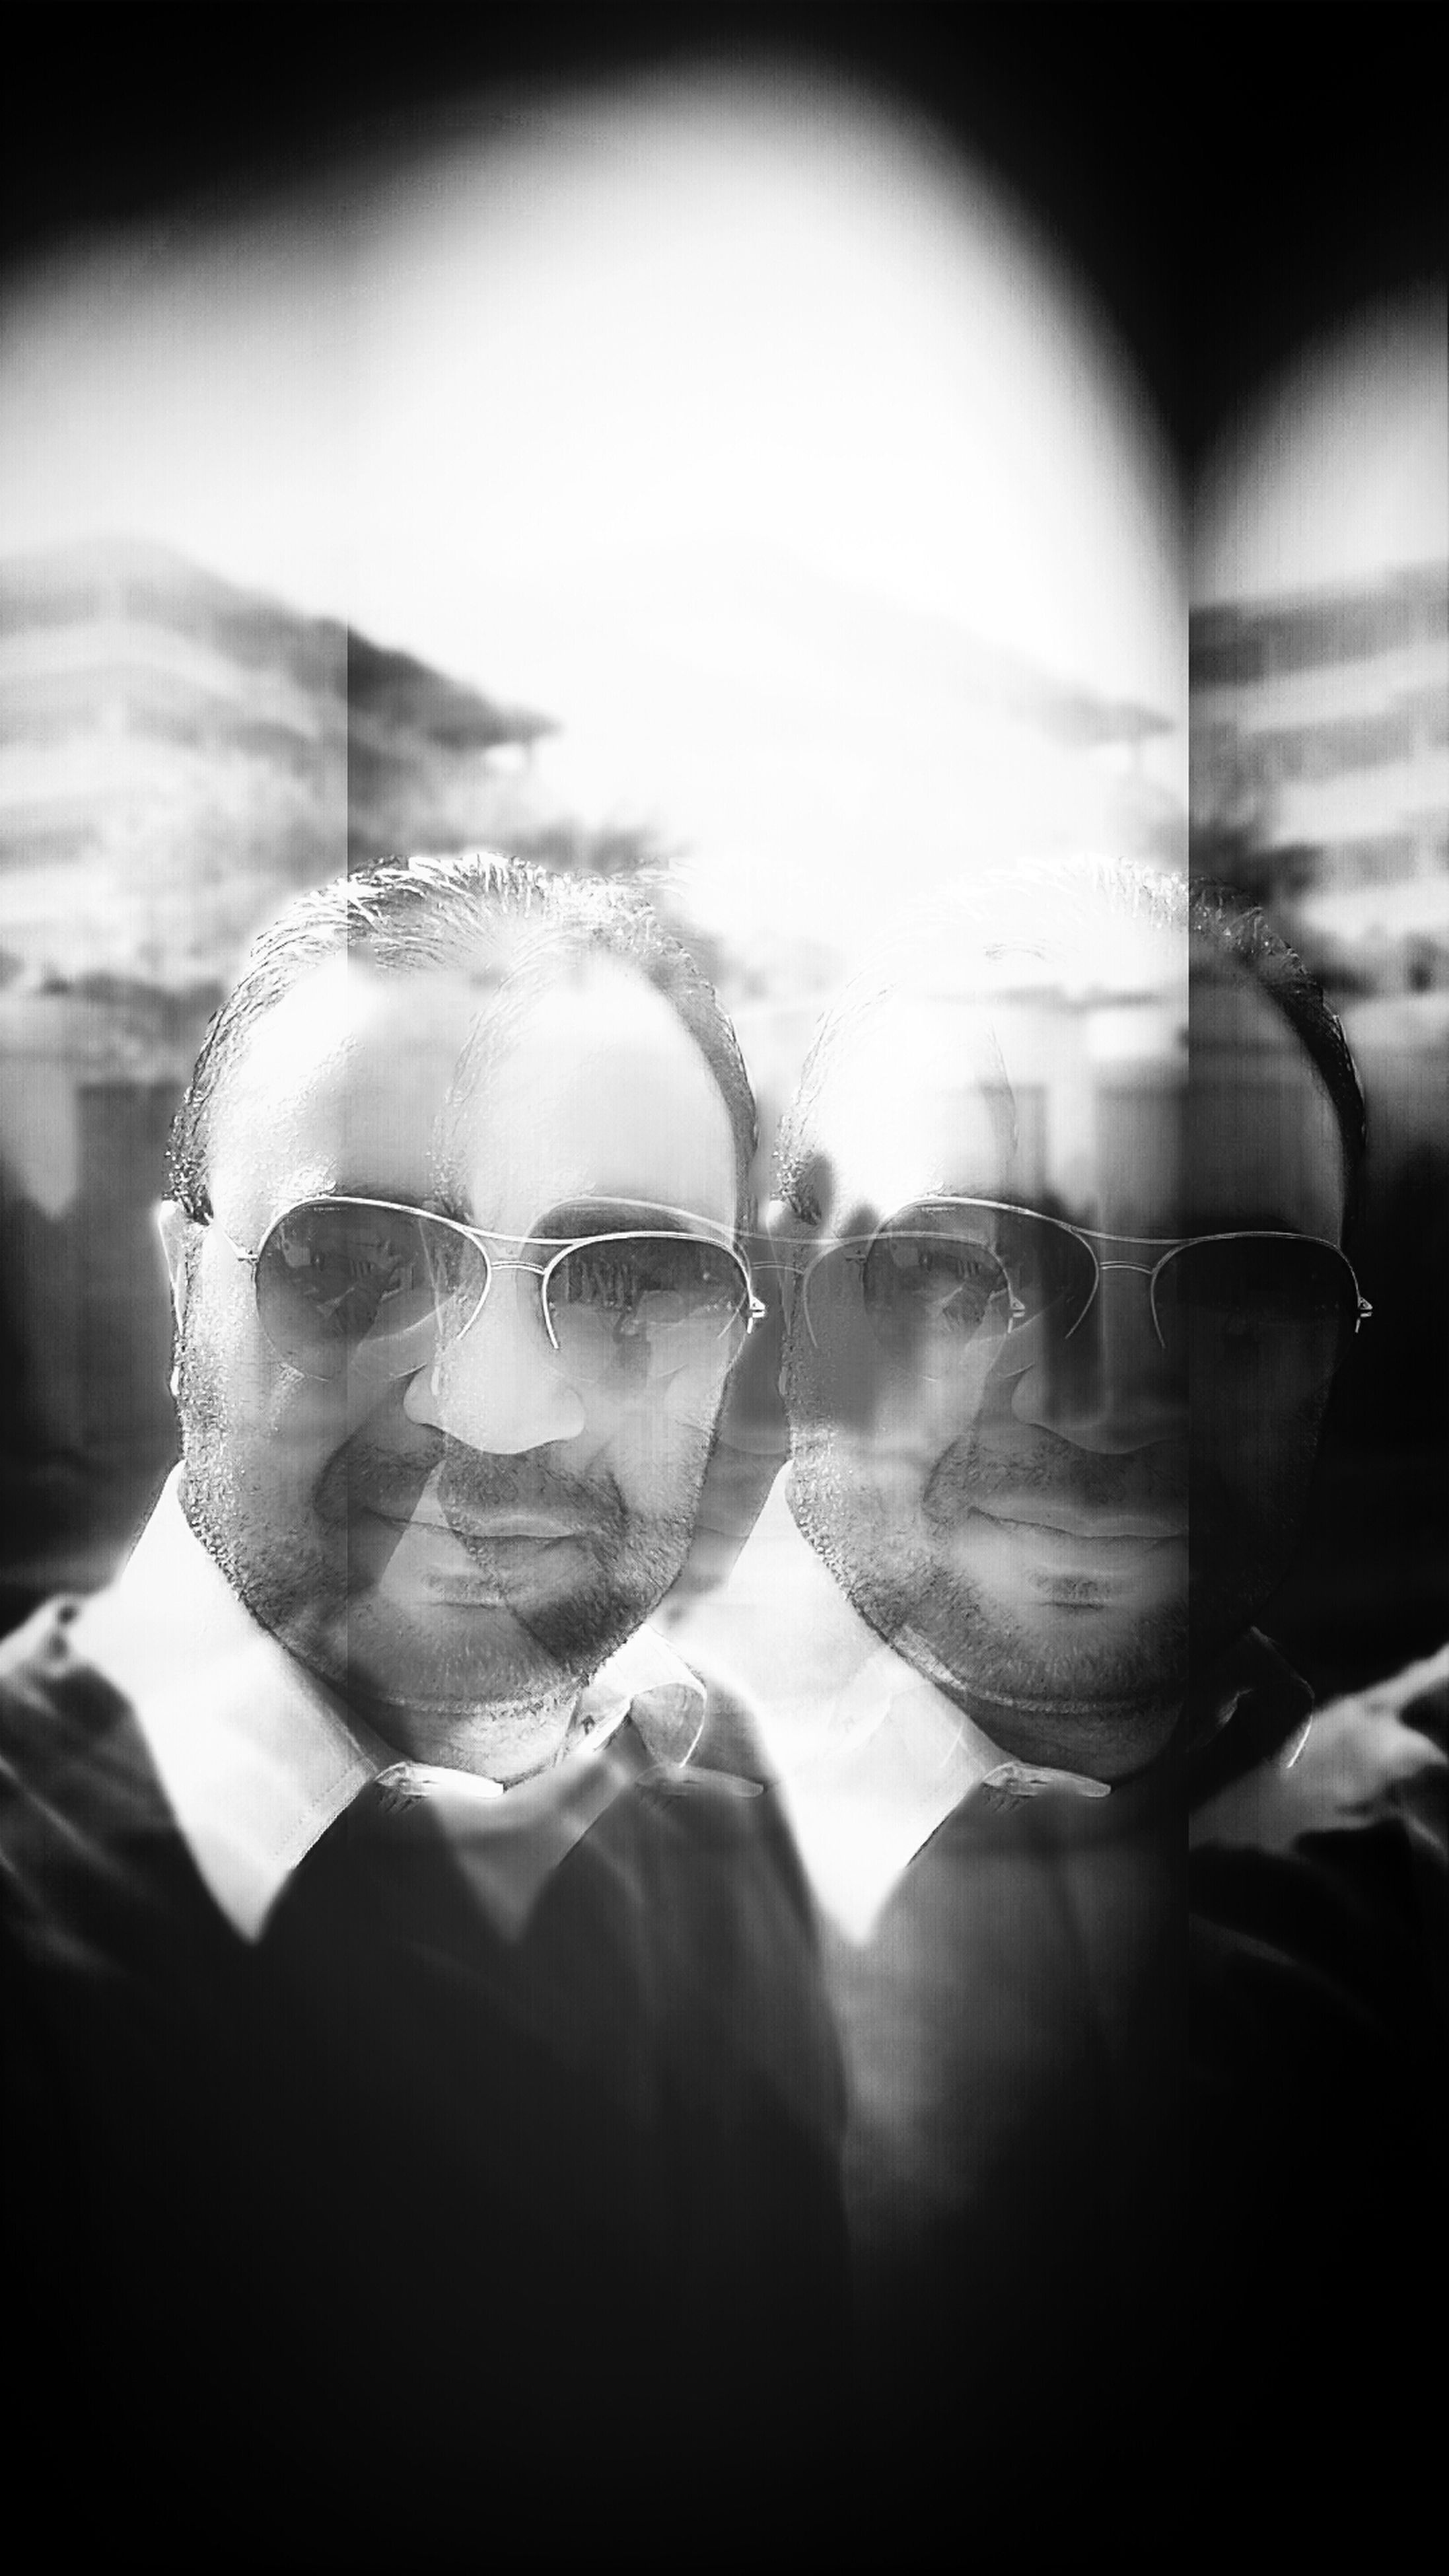 transparent, lifestyles, glass - material, indoors, leisure activity, headshot, sunglasses, reflection, head and shoulders, young adult, person, close-up, window, portrait, front view, glass, looking at camera, young men